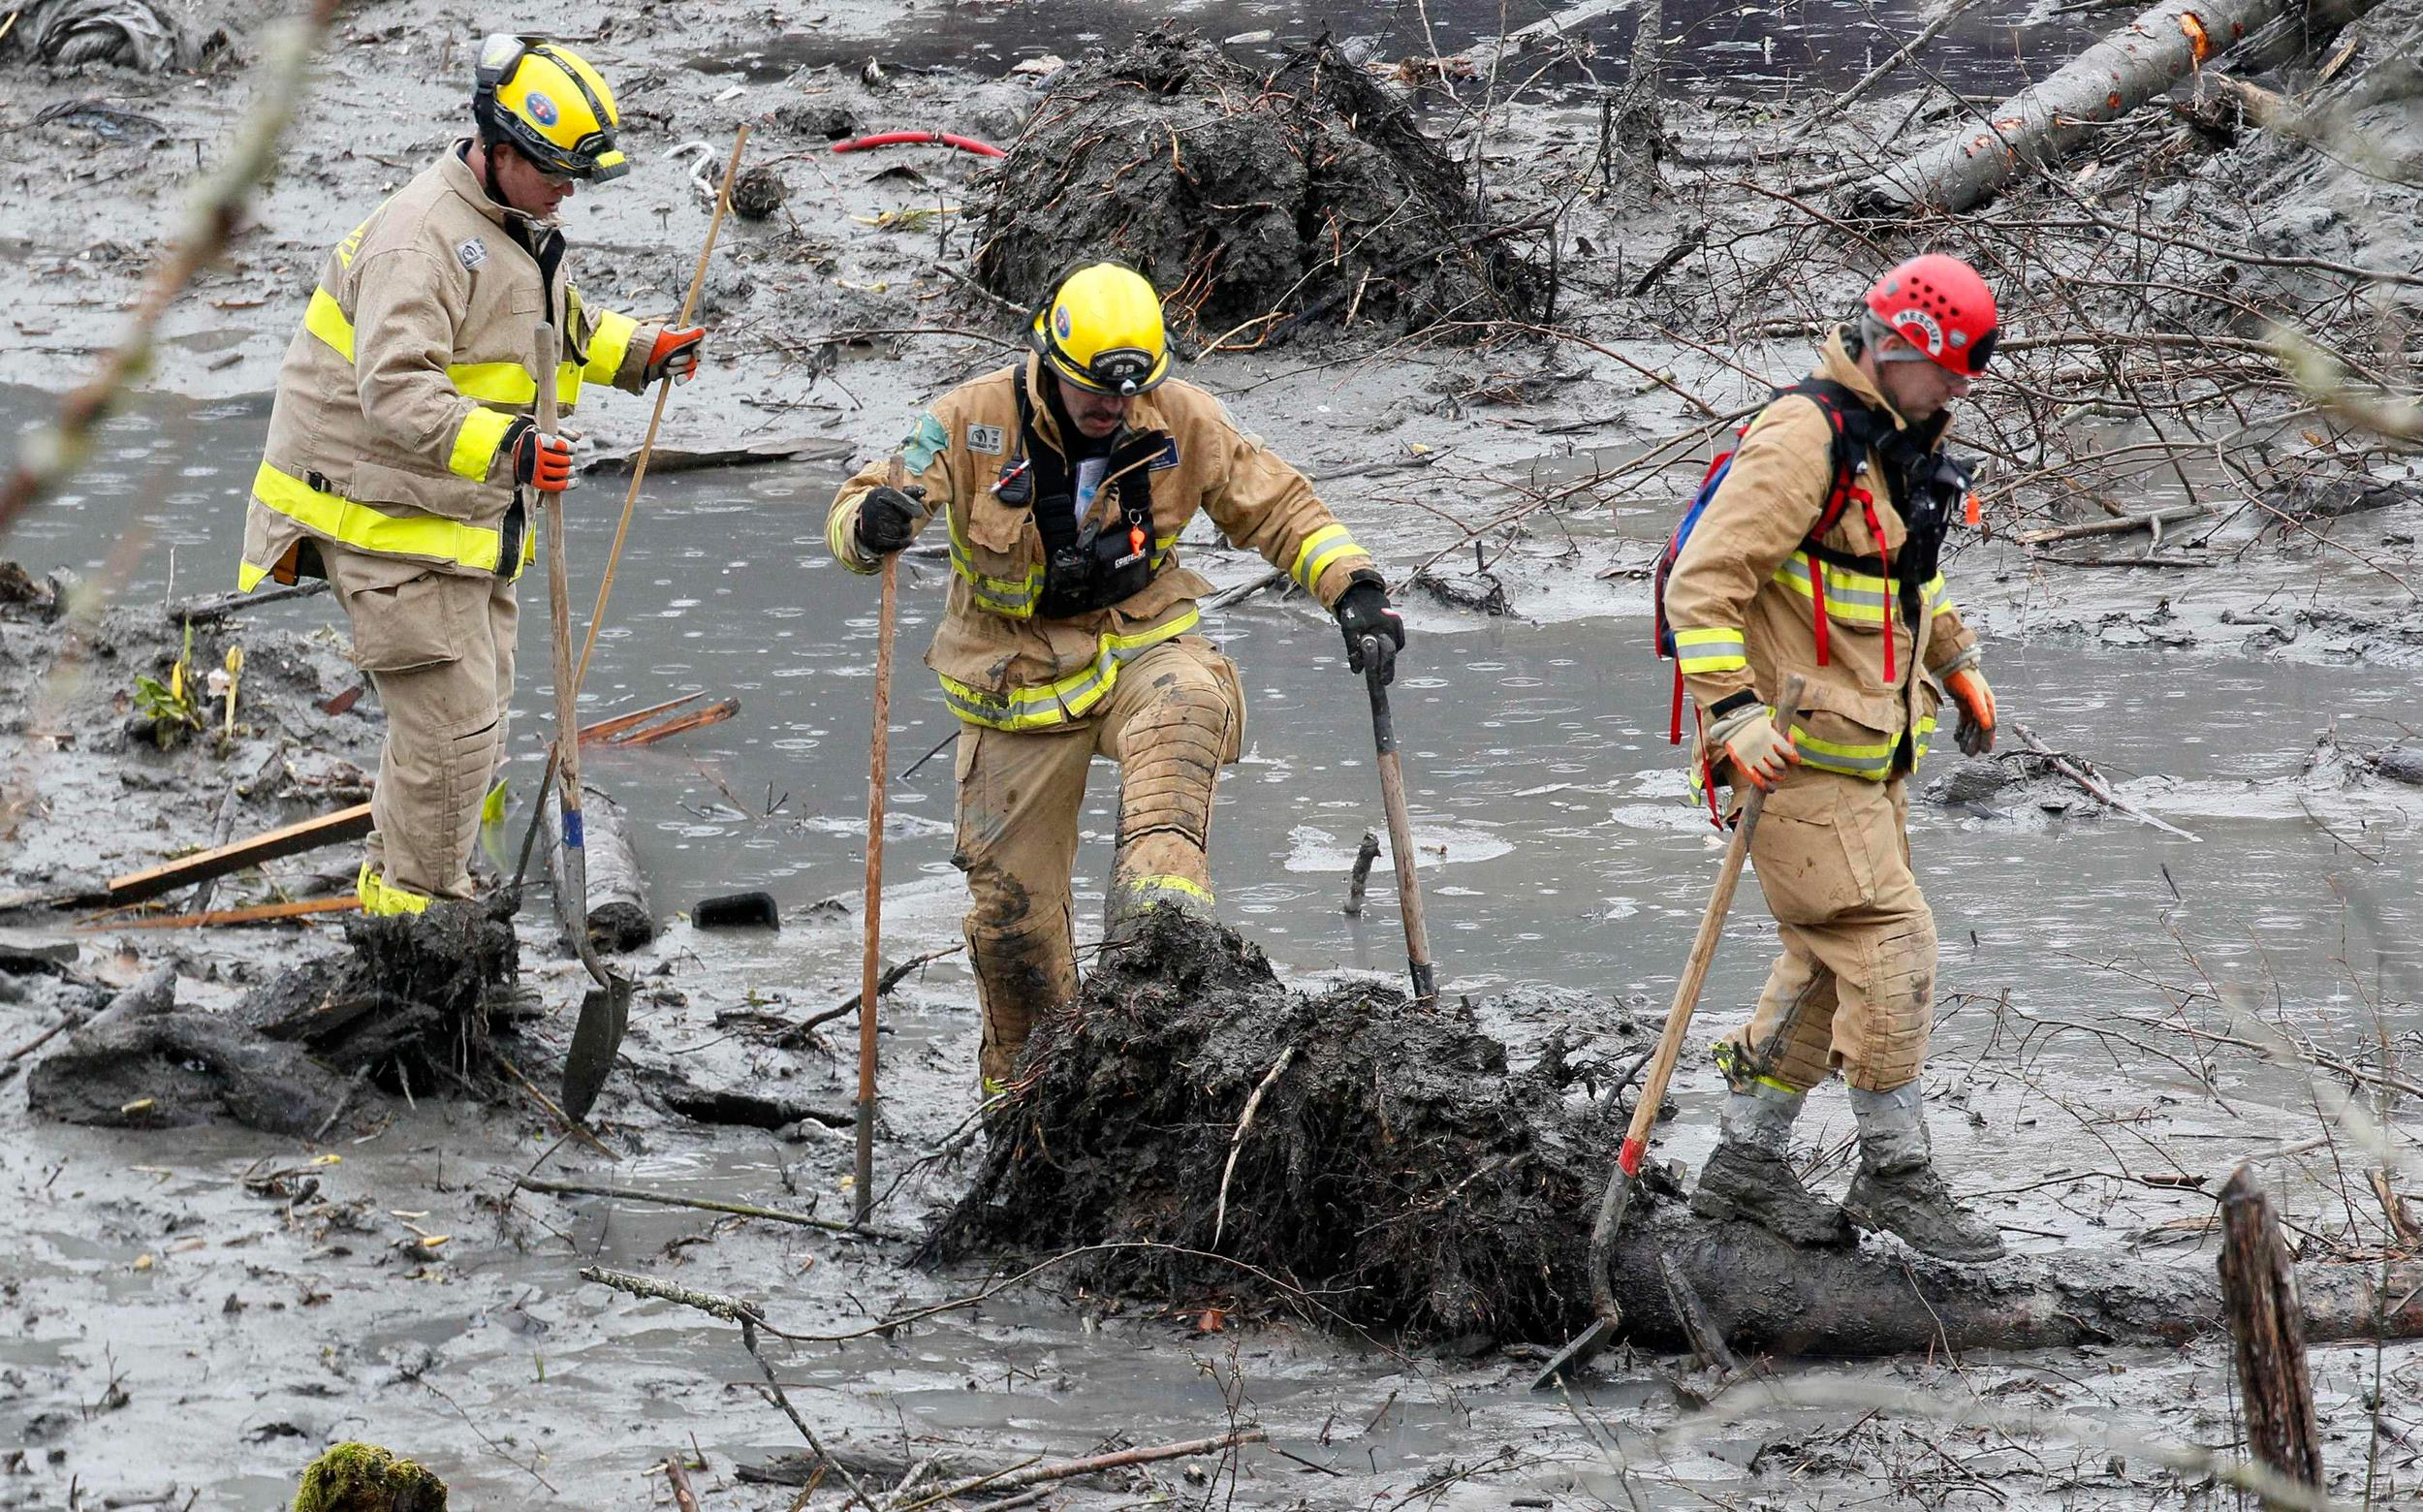 Image: Rescue workers struggle through the mud looking for victims at the mudslide in Oso